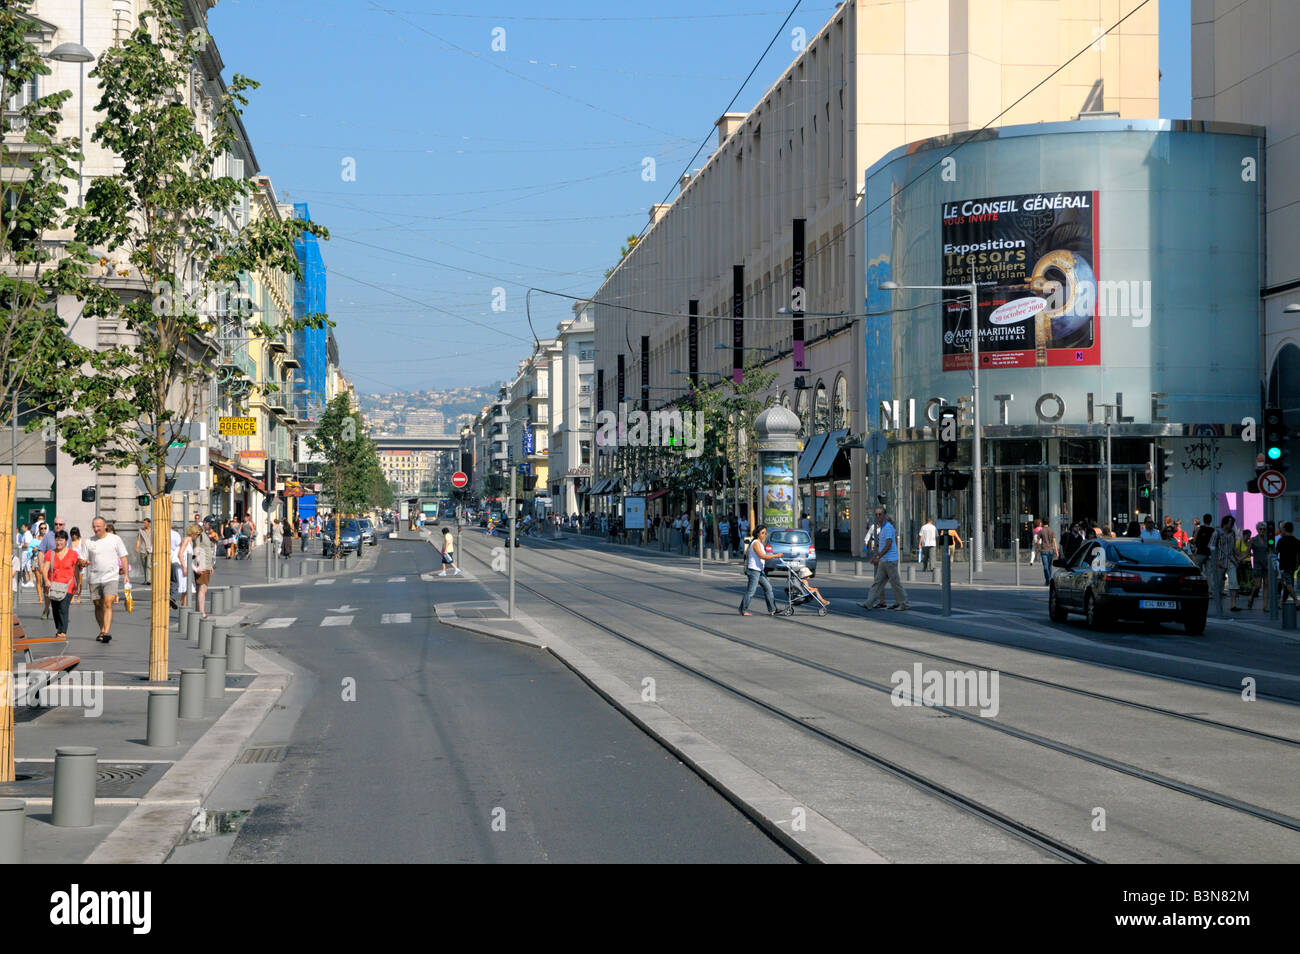 avenue jean medecin the main street of nice on the cote d azur stock photo royalty free image. Black Bedroom Furniture Sets. Home Design Ideas